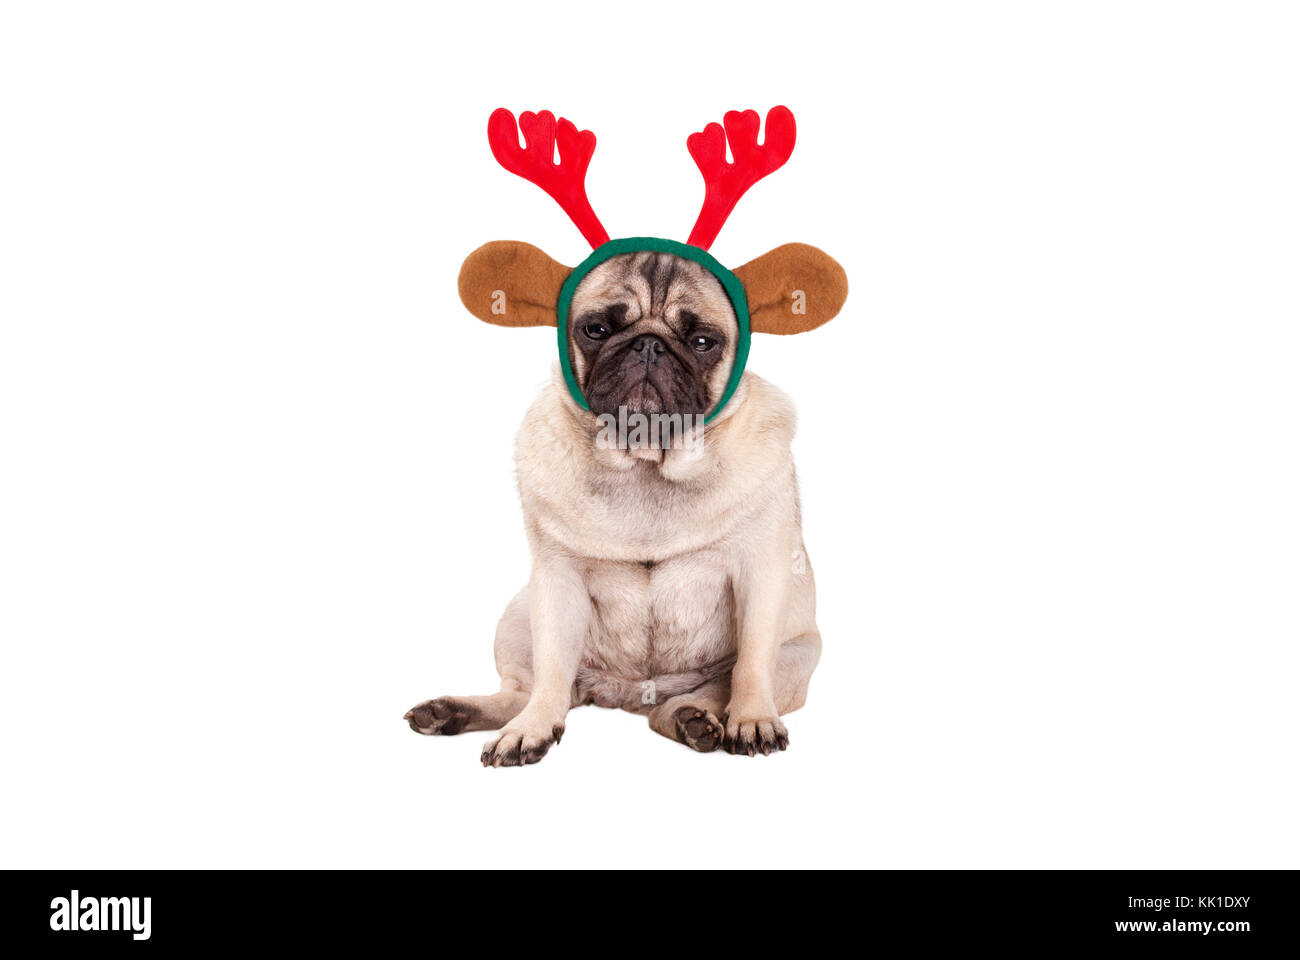 cute pug puppy dog with reindeer antlers diadem for Christmas, sitting down, looking grumpy, isolated on white background - Stock Image